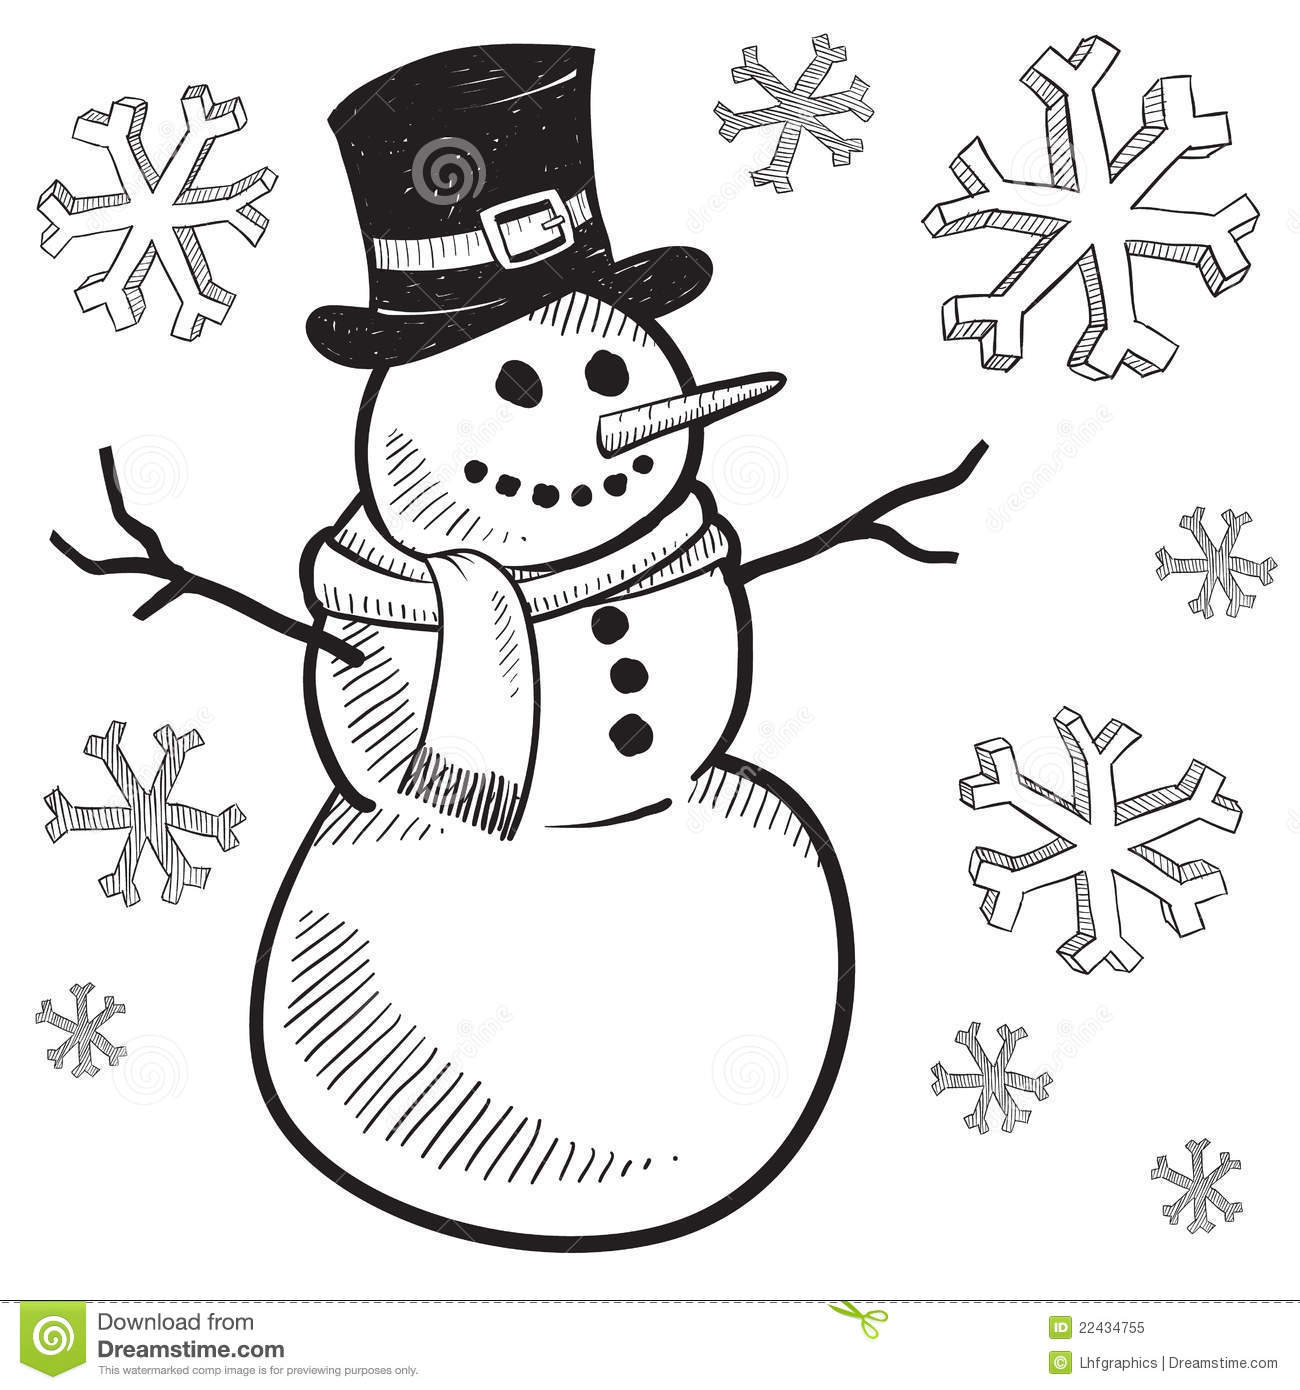 Holiday Snowman Drawing Stock Vector. Illustration Of Family - 22434755